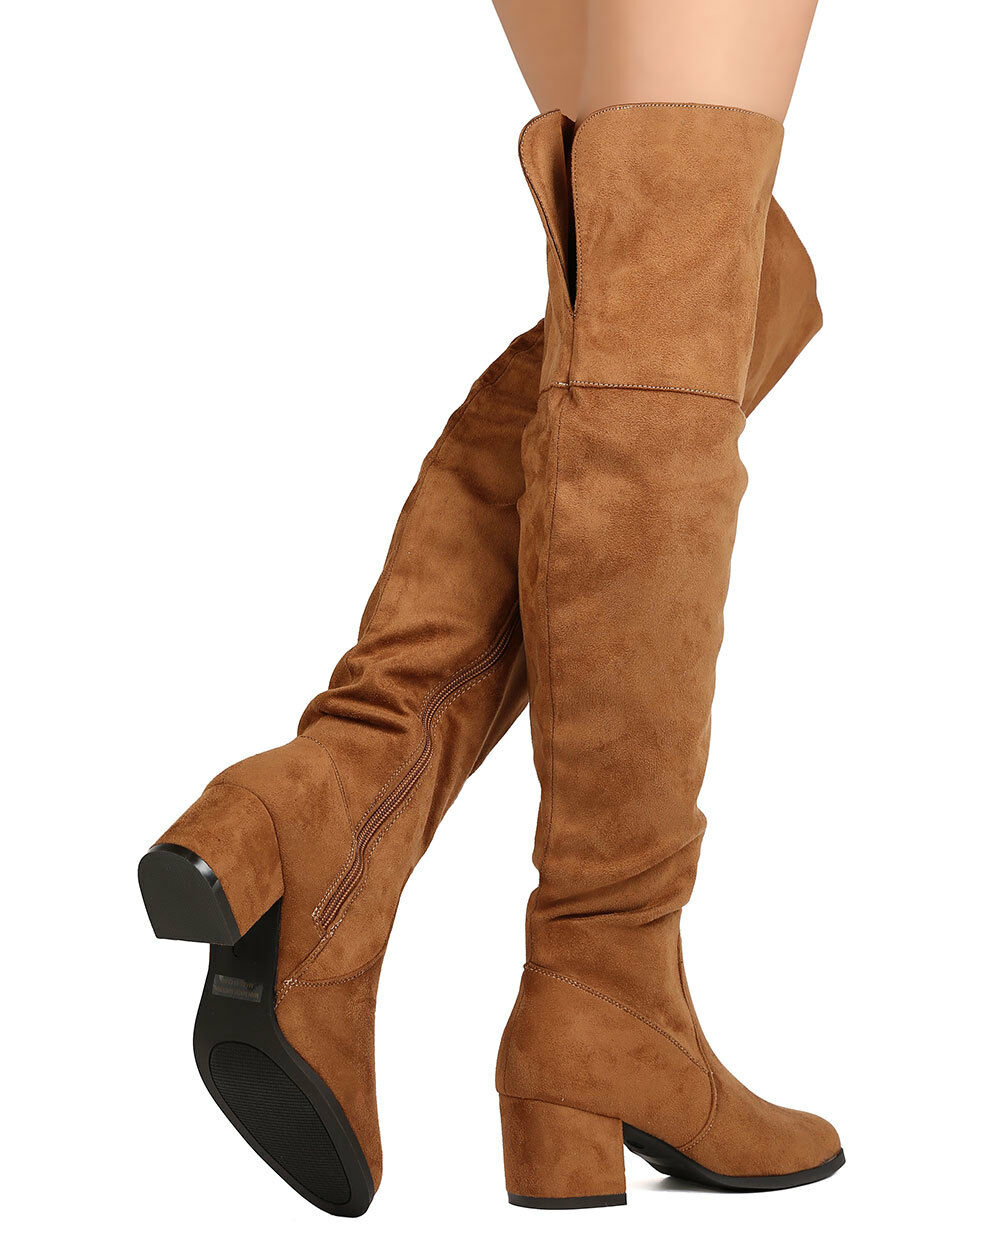 New Women Refresh Becky-02 Faux Suede Over The Knee Chunky Heel Boot